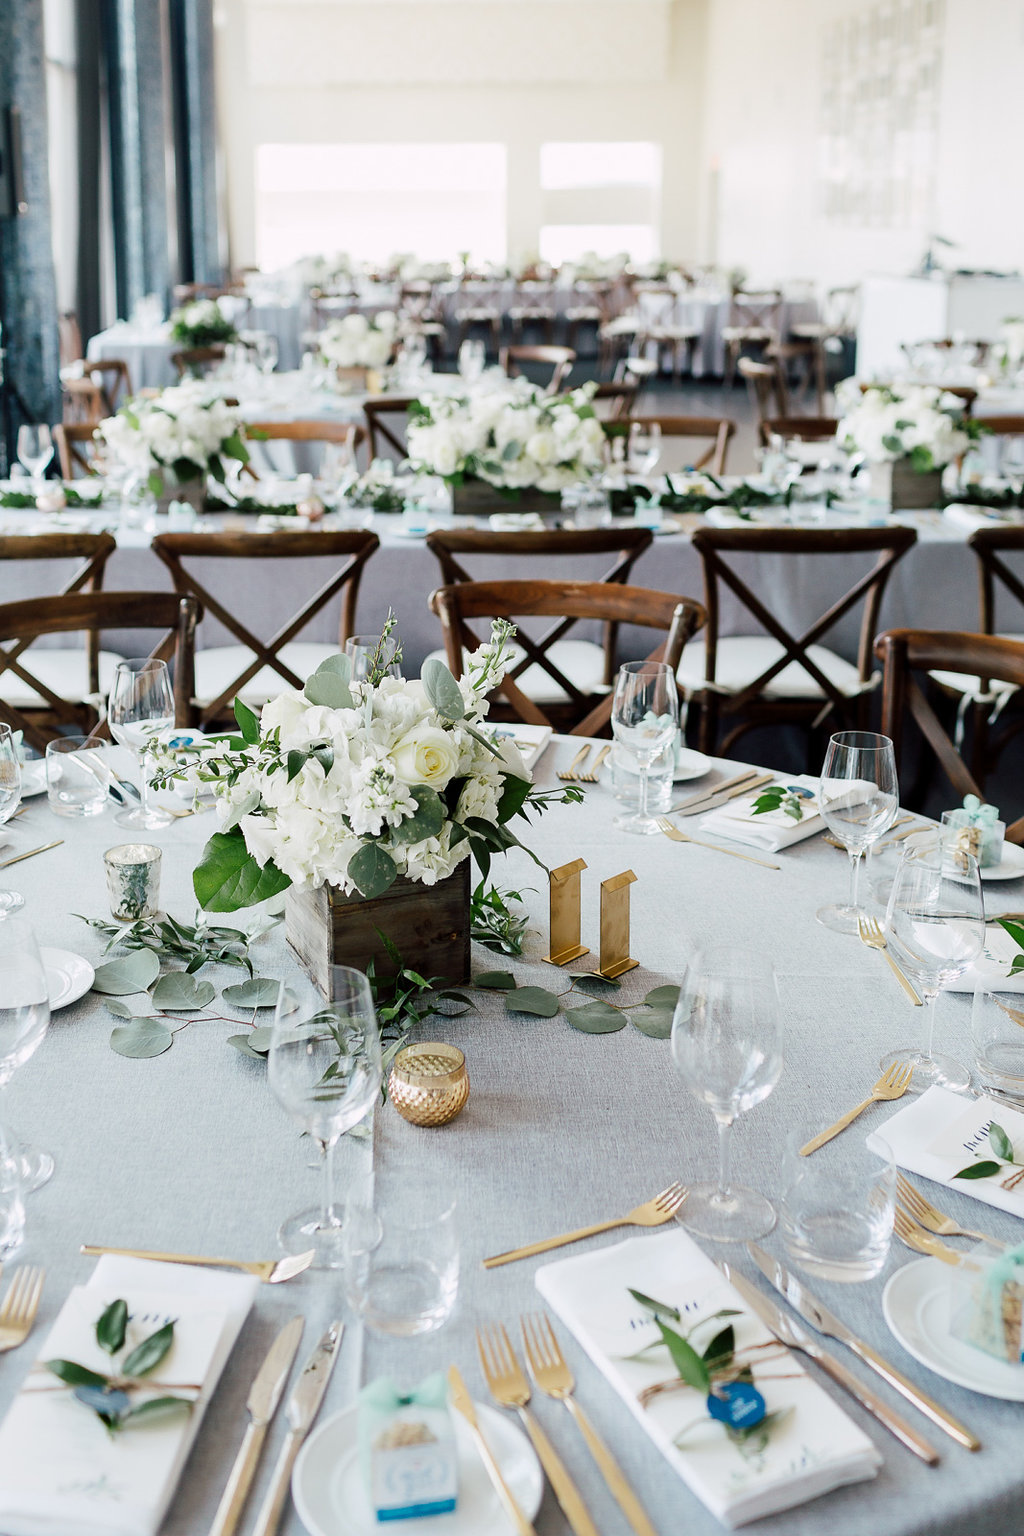 City rustic - S + M rooftop wedding at Malaparte